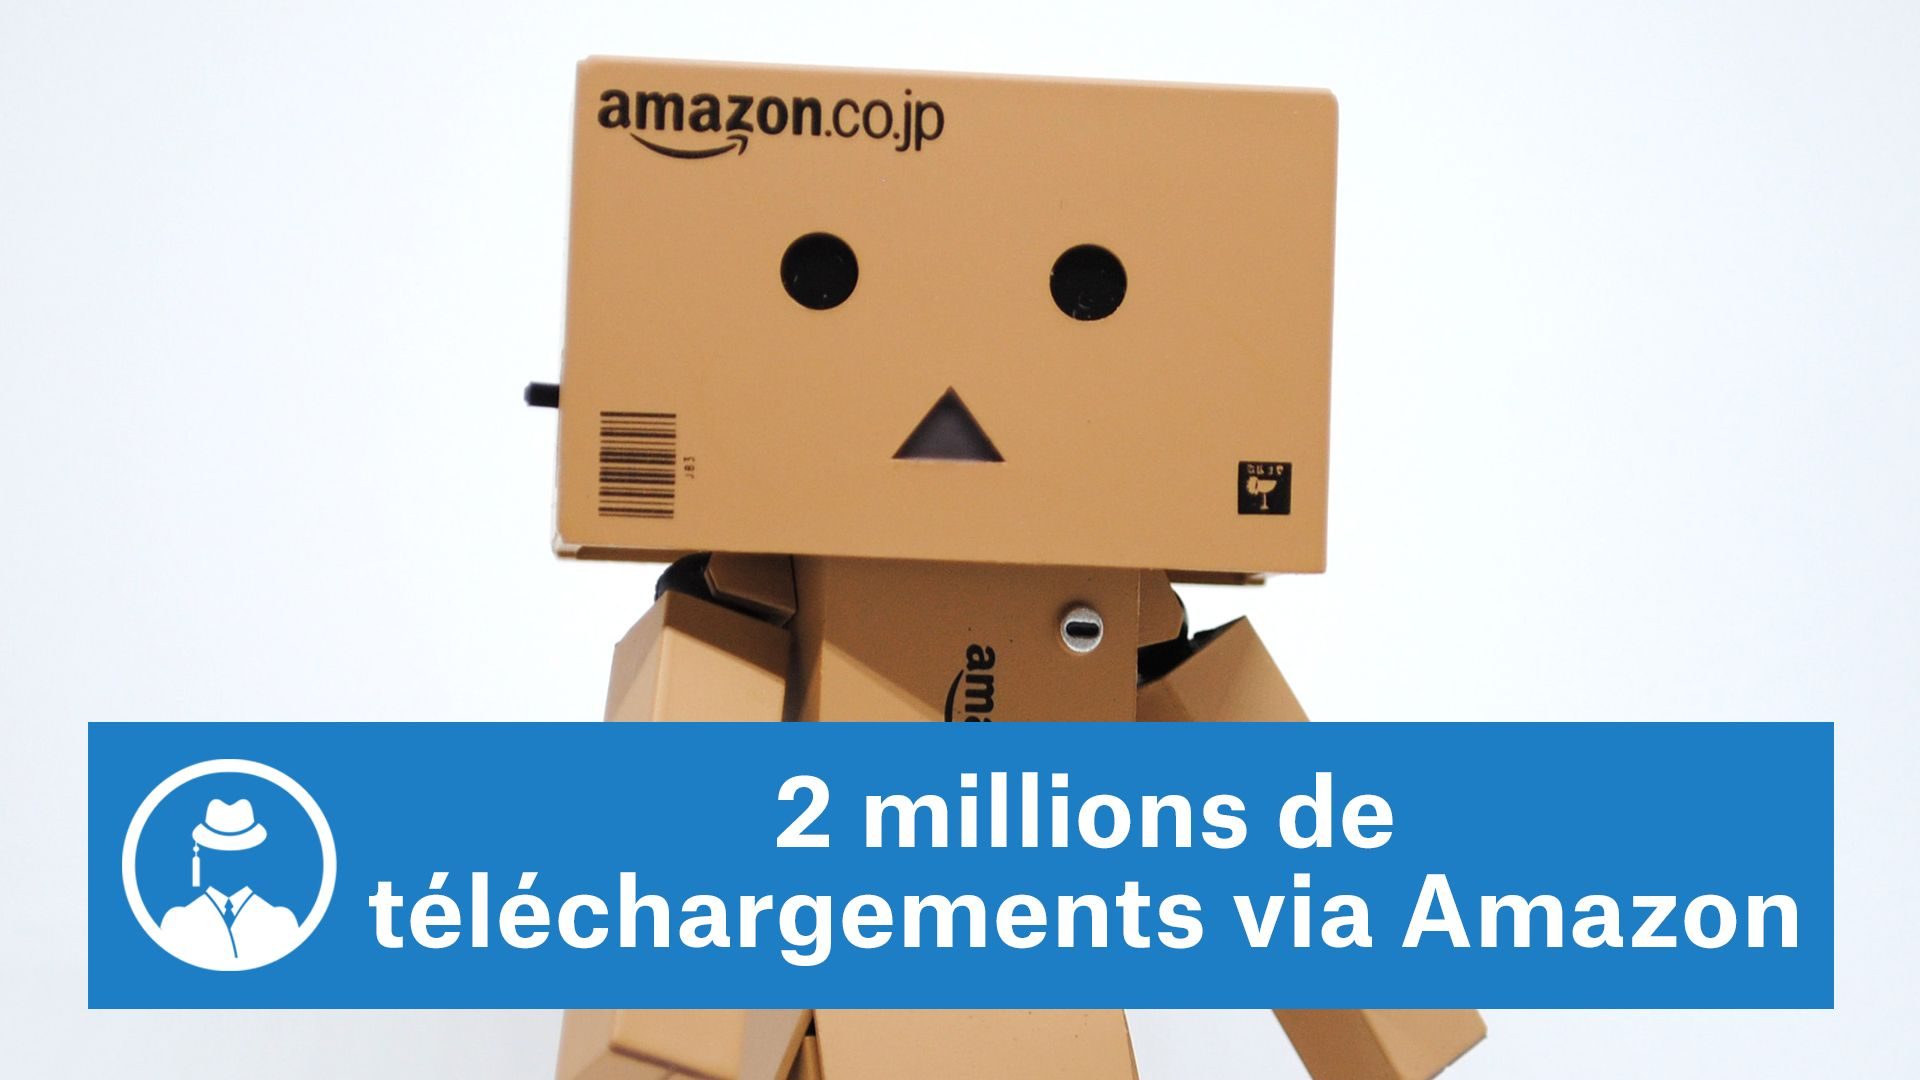 2 millions de téléchargements via Amazon #GrowthHacking #WebMarketing #FormationGrowthHacking #CentreDeFormationFrance #TunnelAARRR #AARRR #SocialMedia #CommunityManagement #SEO #MarketingDigital #SiteWeb